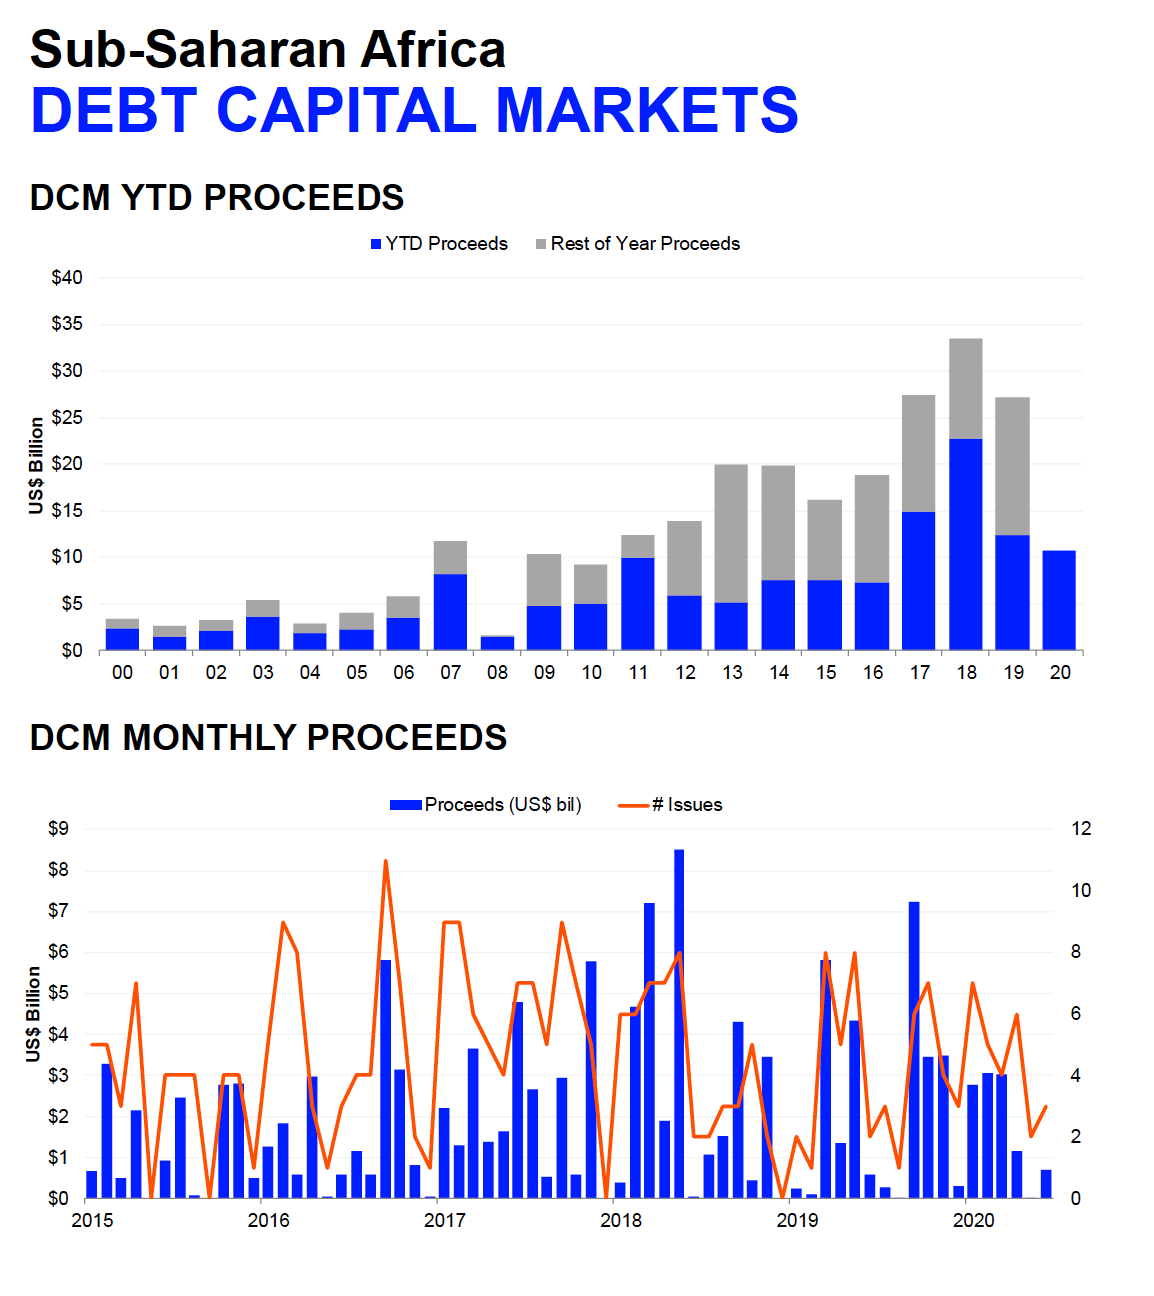 Africa's Debt Capital Market Q1, 2020